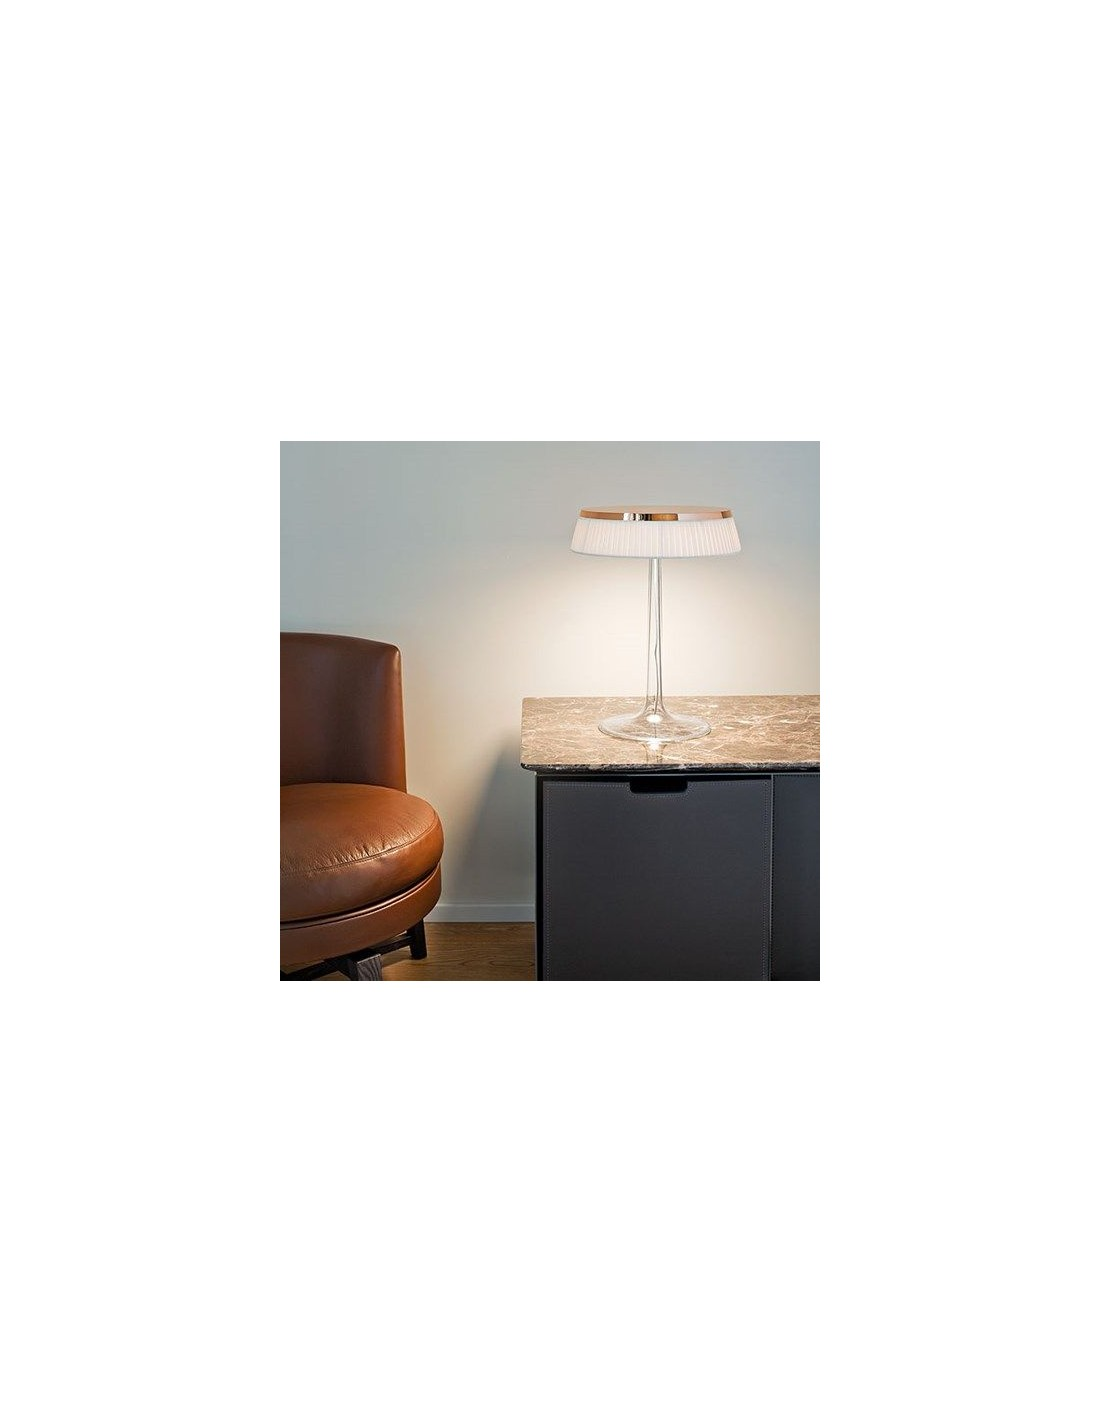 Lampe de table bon jour philippe starck mise en sc ne de flos for Lampe de table rona